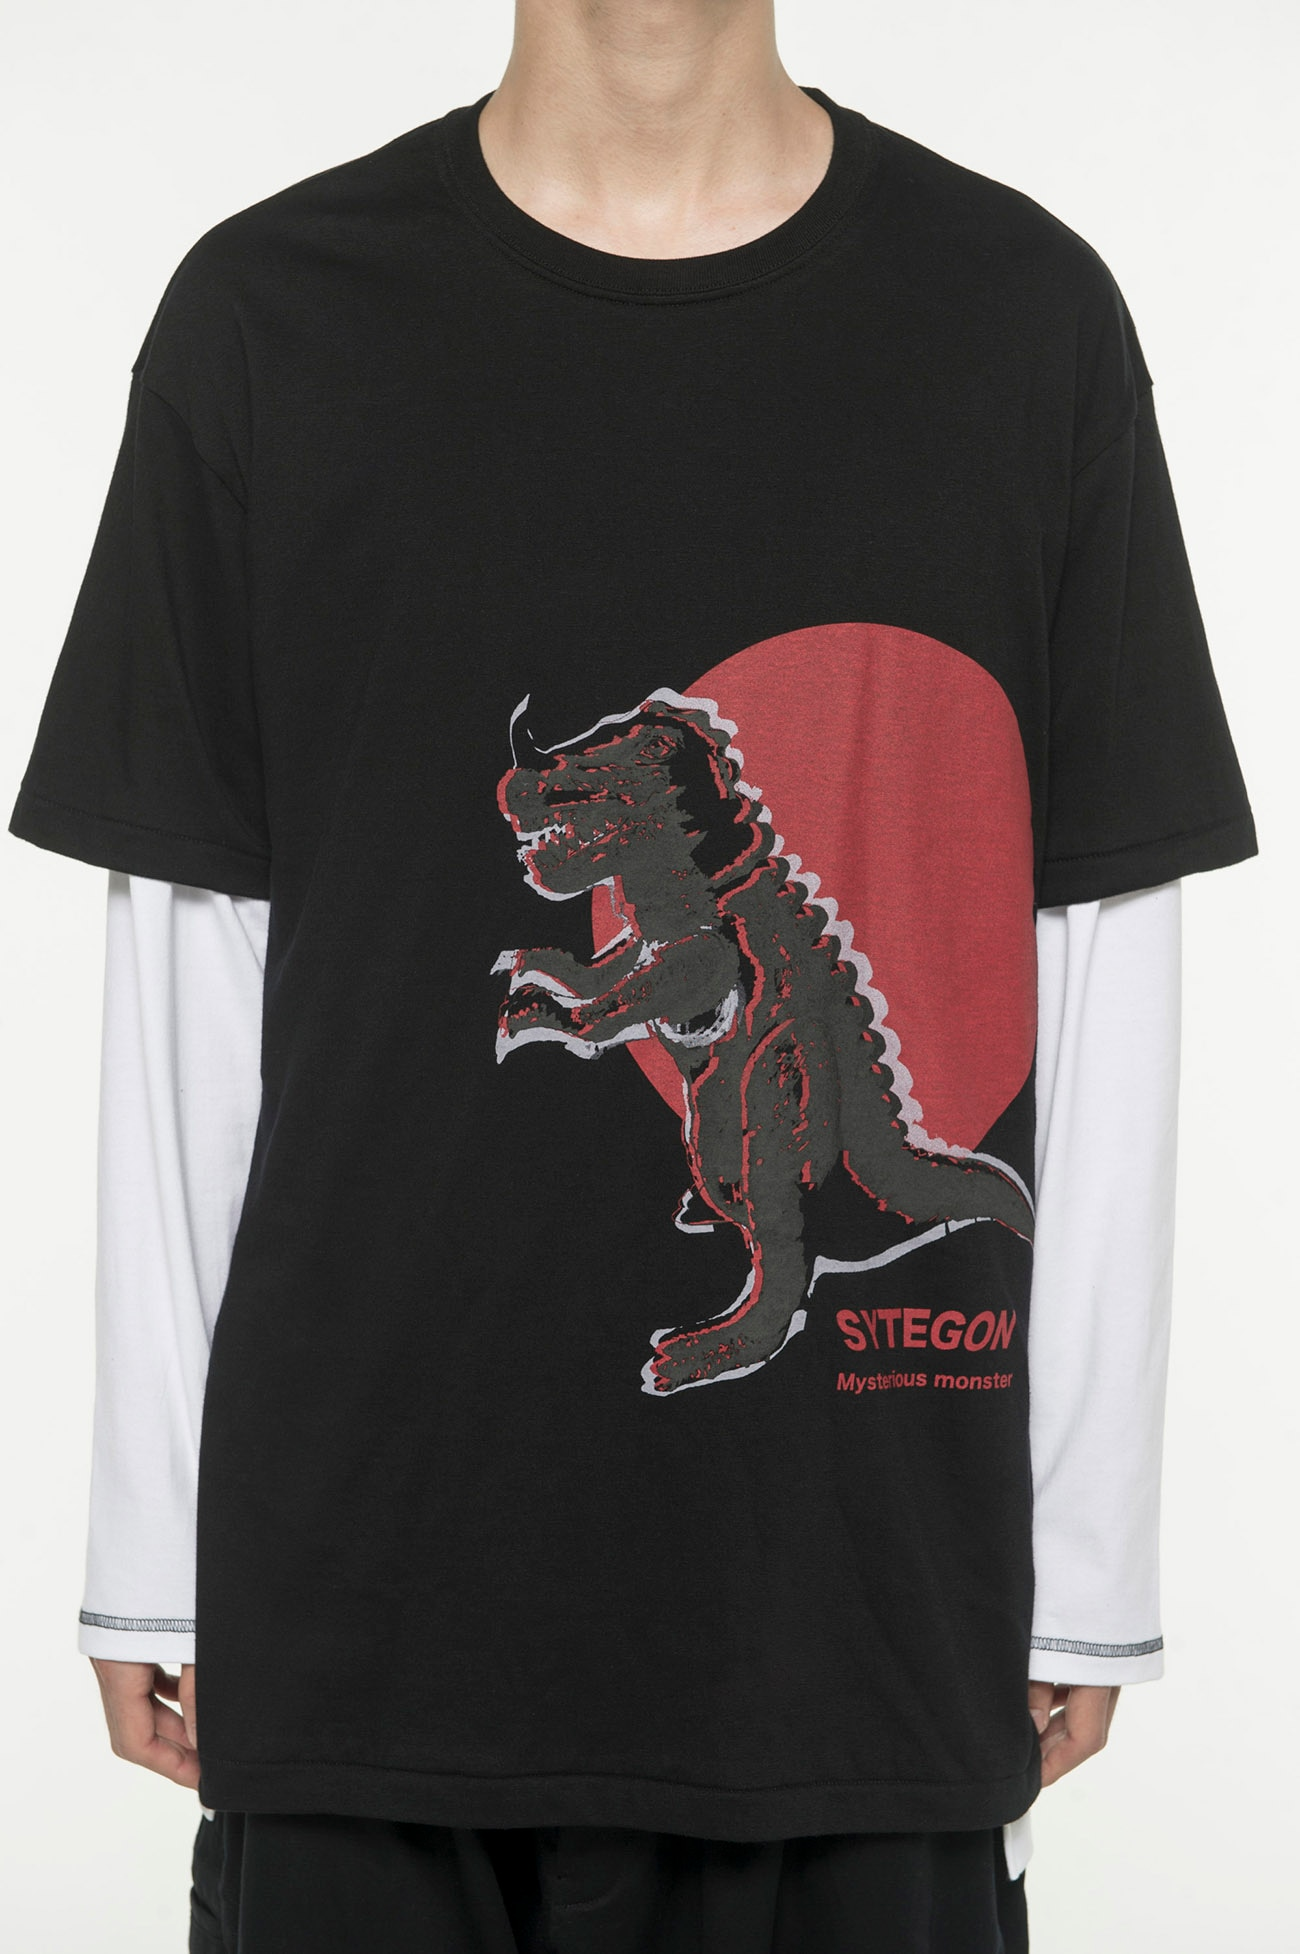 20 / Cotton Jersey Soft Vinyl Monster SYTEGON T-Shirt